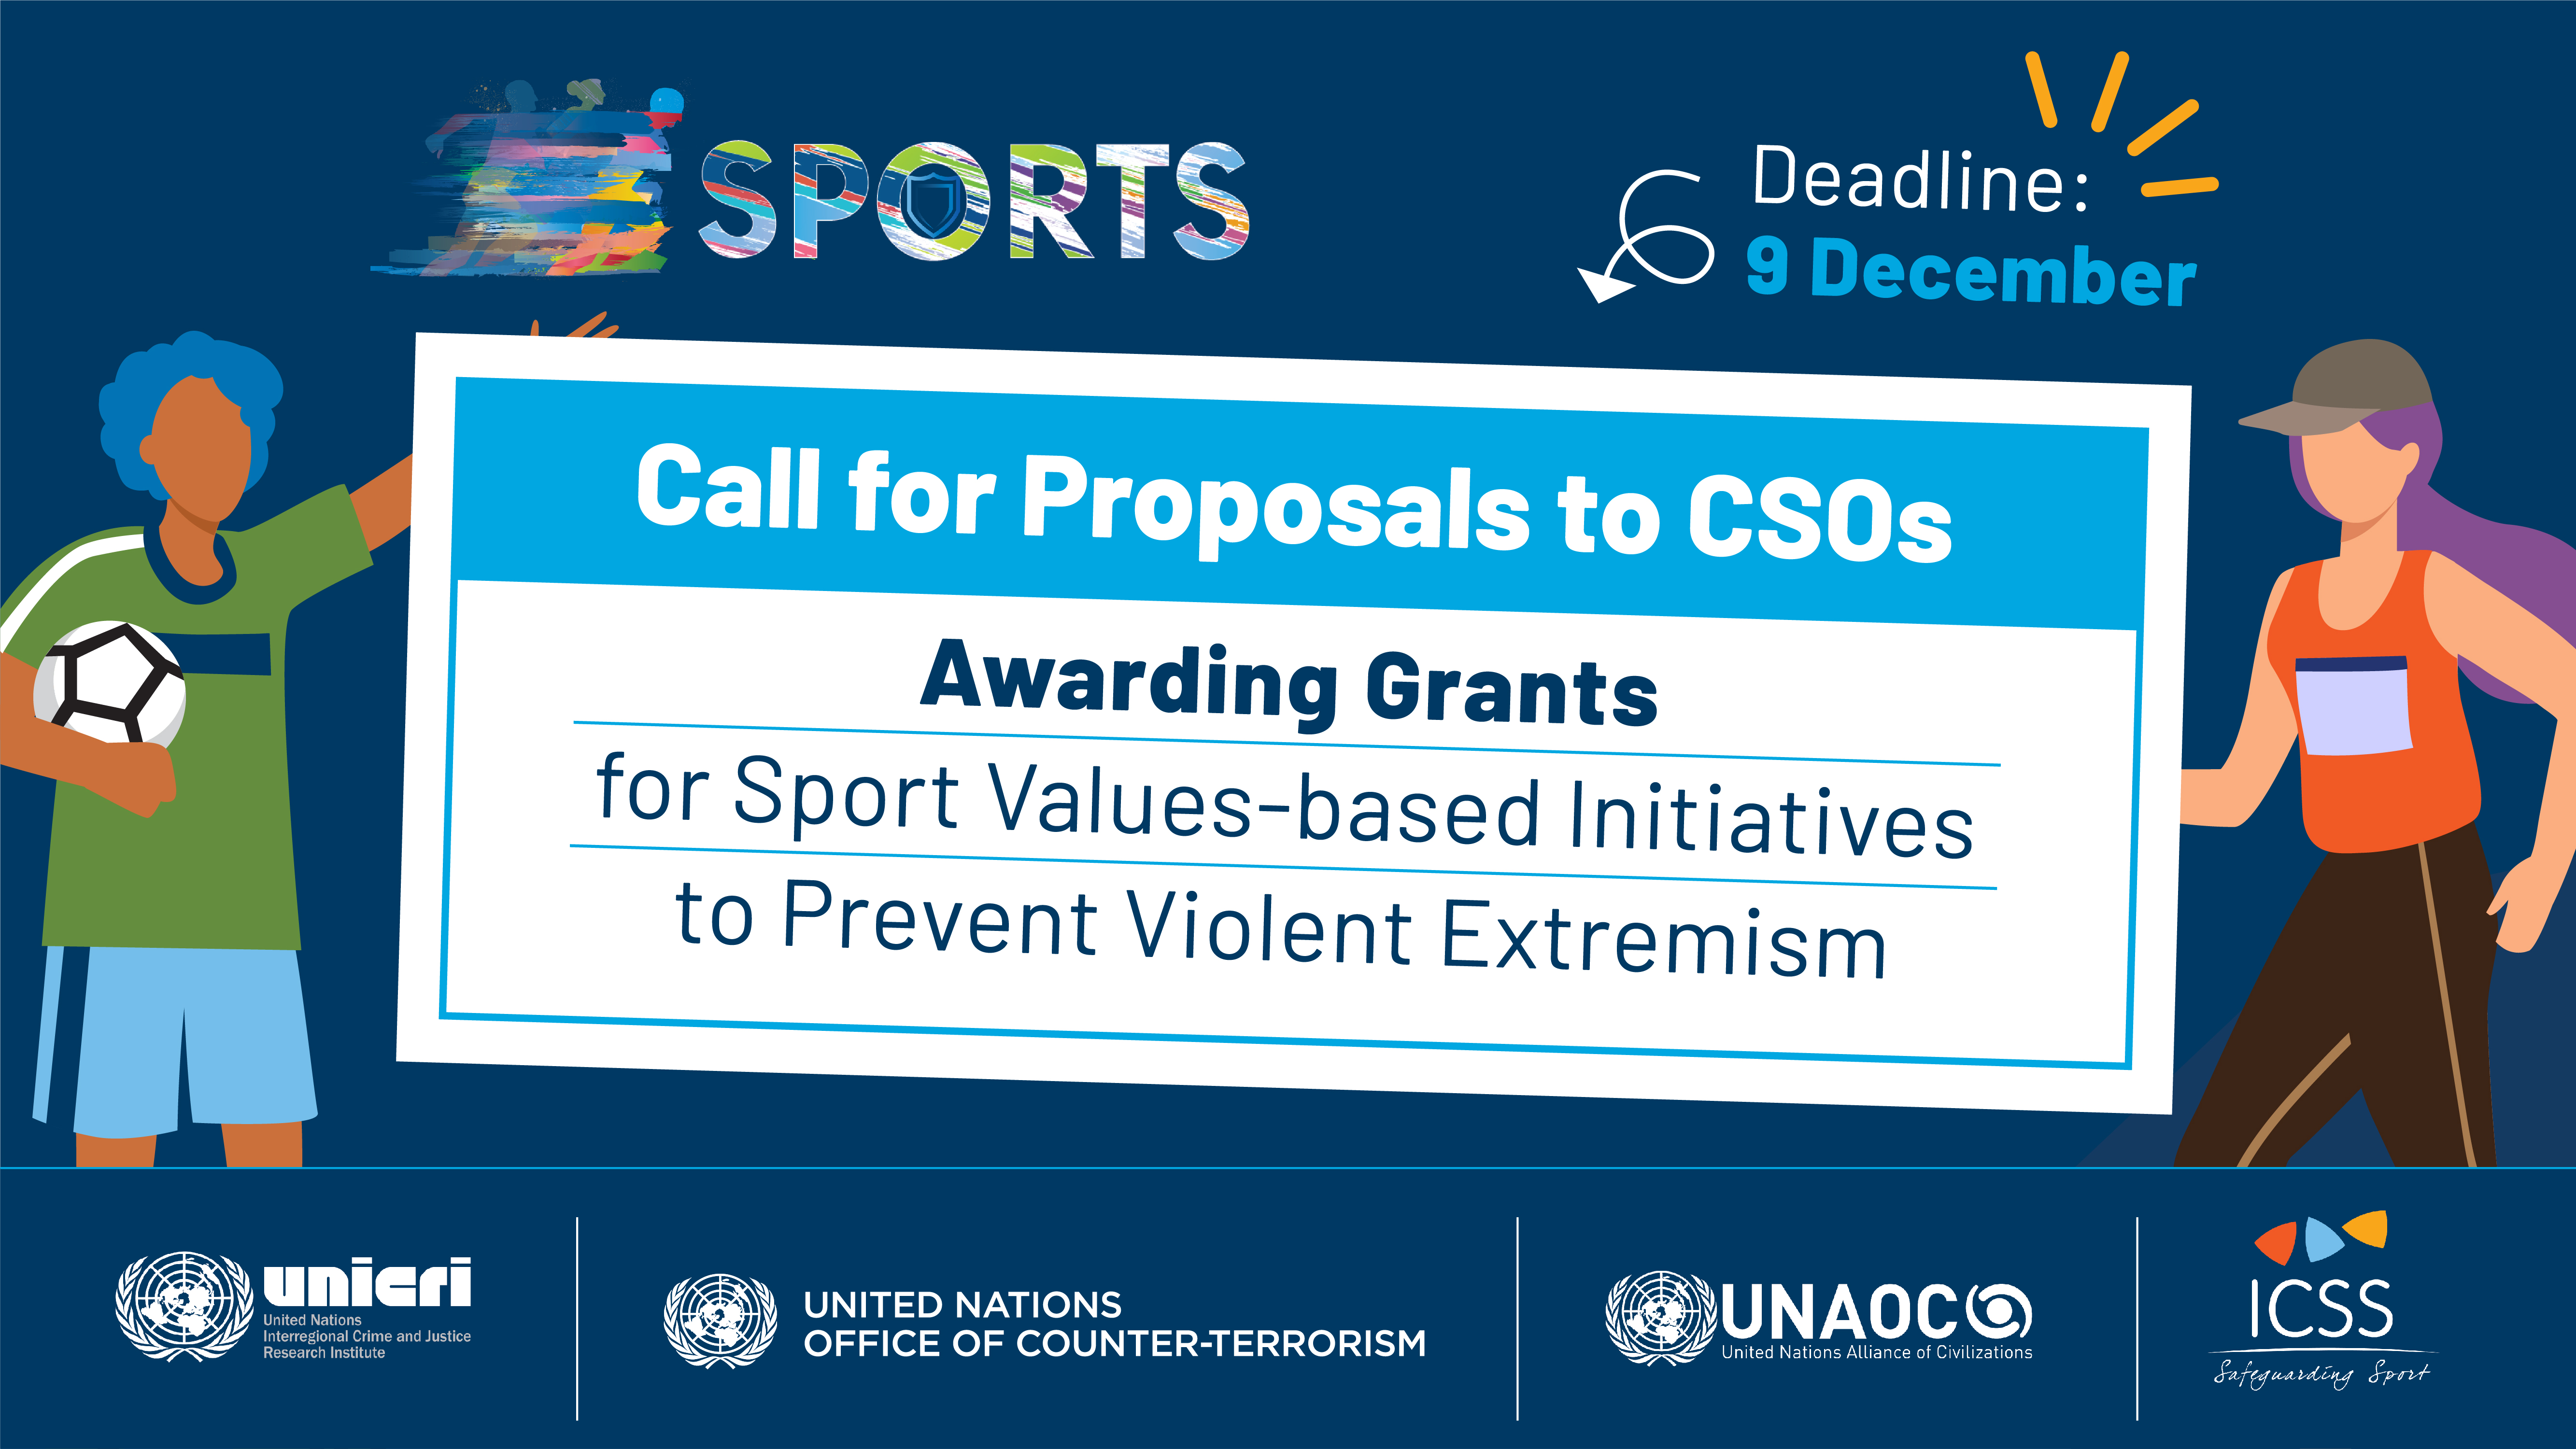 image of Call for Proposals to Civil Society Organizations